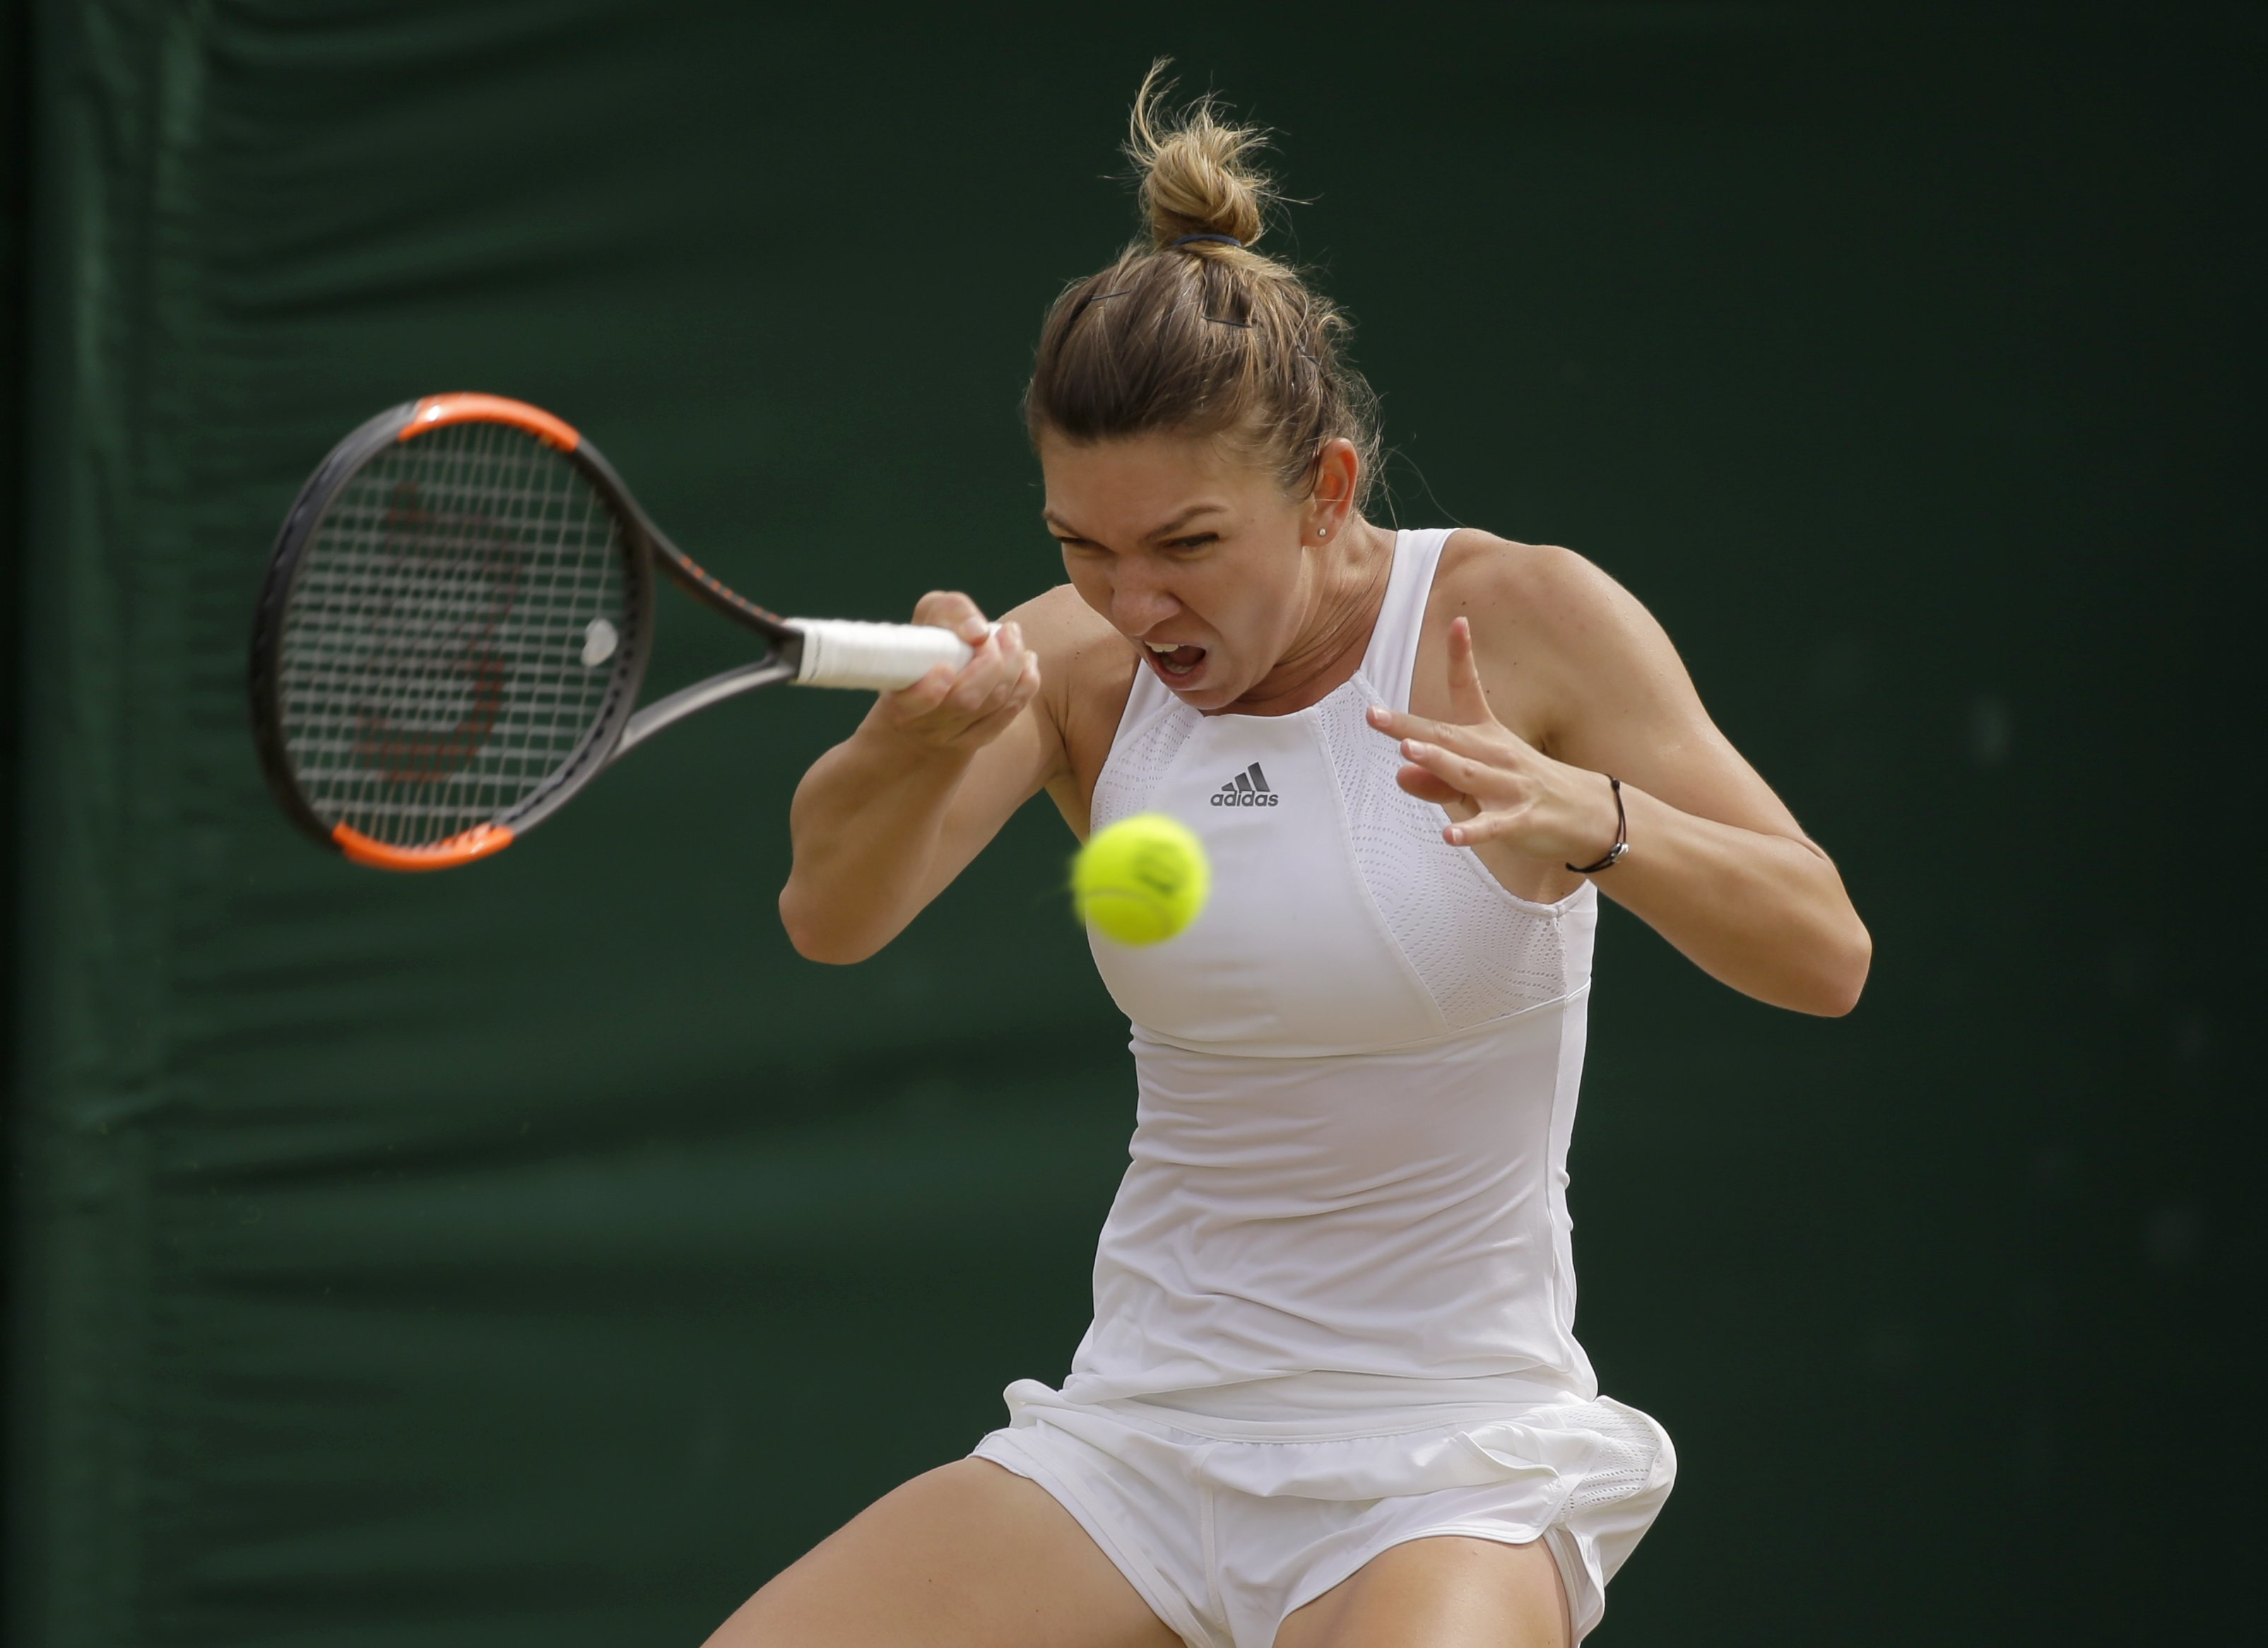 Romania's Simona Halep returns to Victoria Azarenka of Belarus during their Women's Singles Match on day seven at the Wimbledon Tennis Championships in London Monday, July 10, 2017. (AP Photo/Alastair Grant)